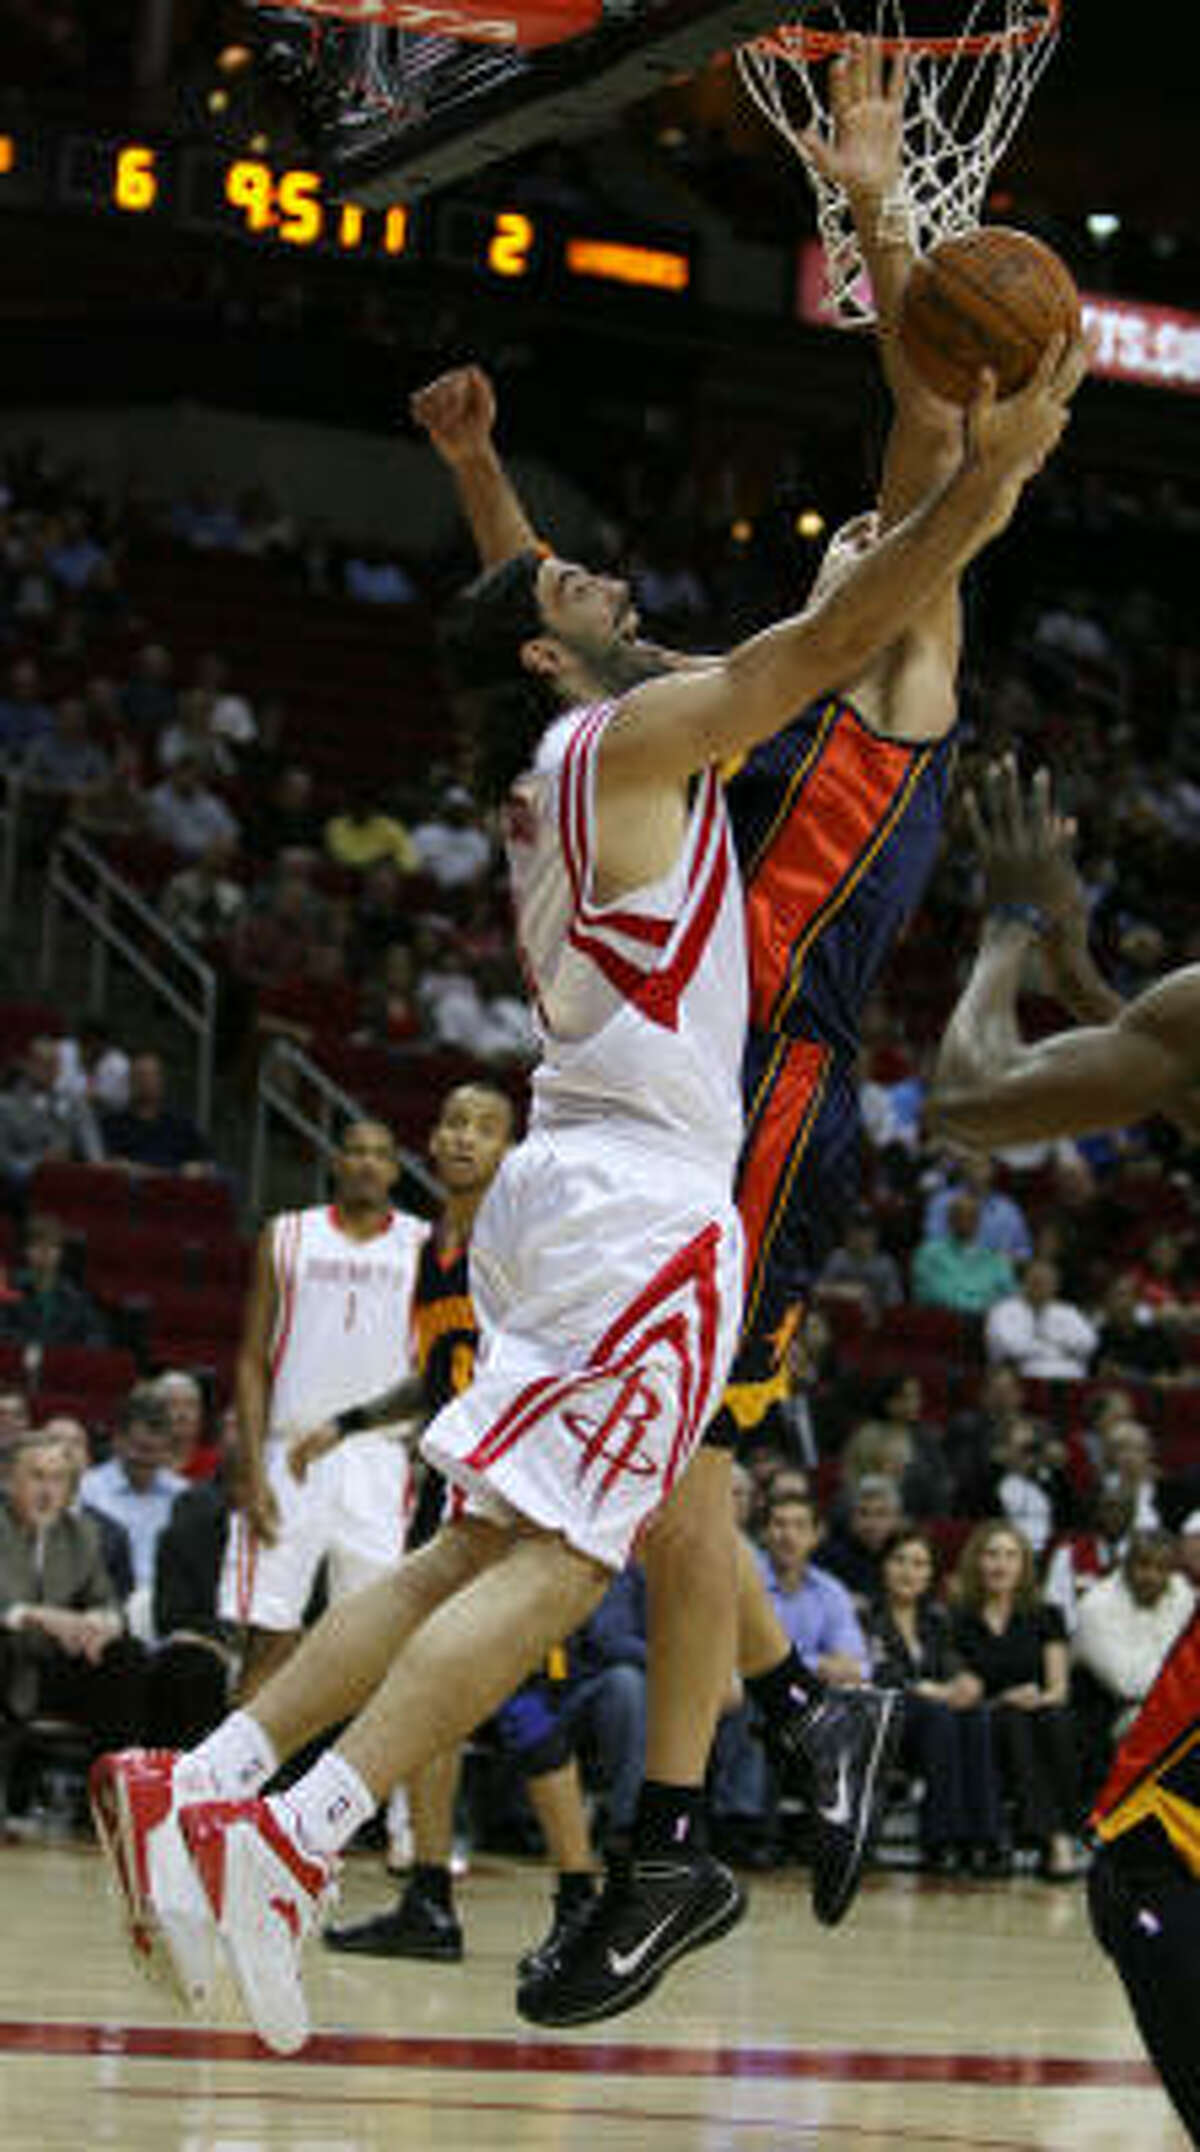 Rockets forward Luis Scola goes up for a reverse layup while Warriors center Andris Biedrins attempts to defend.